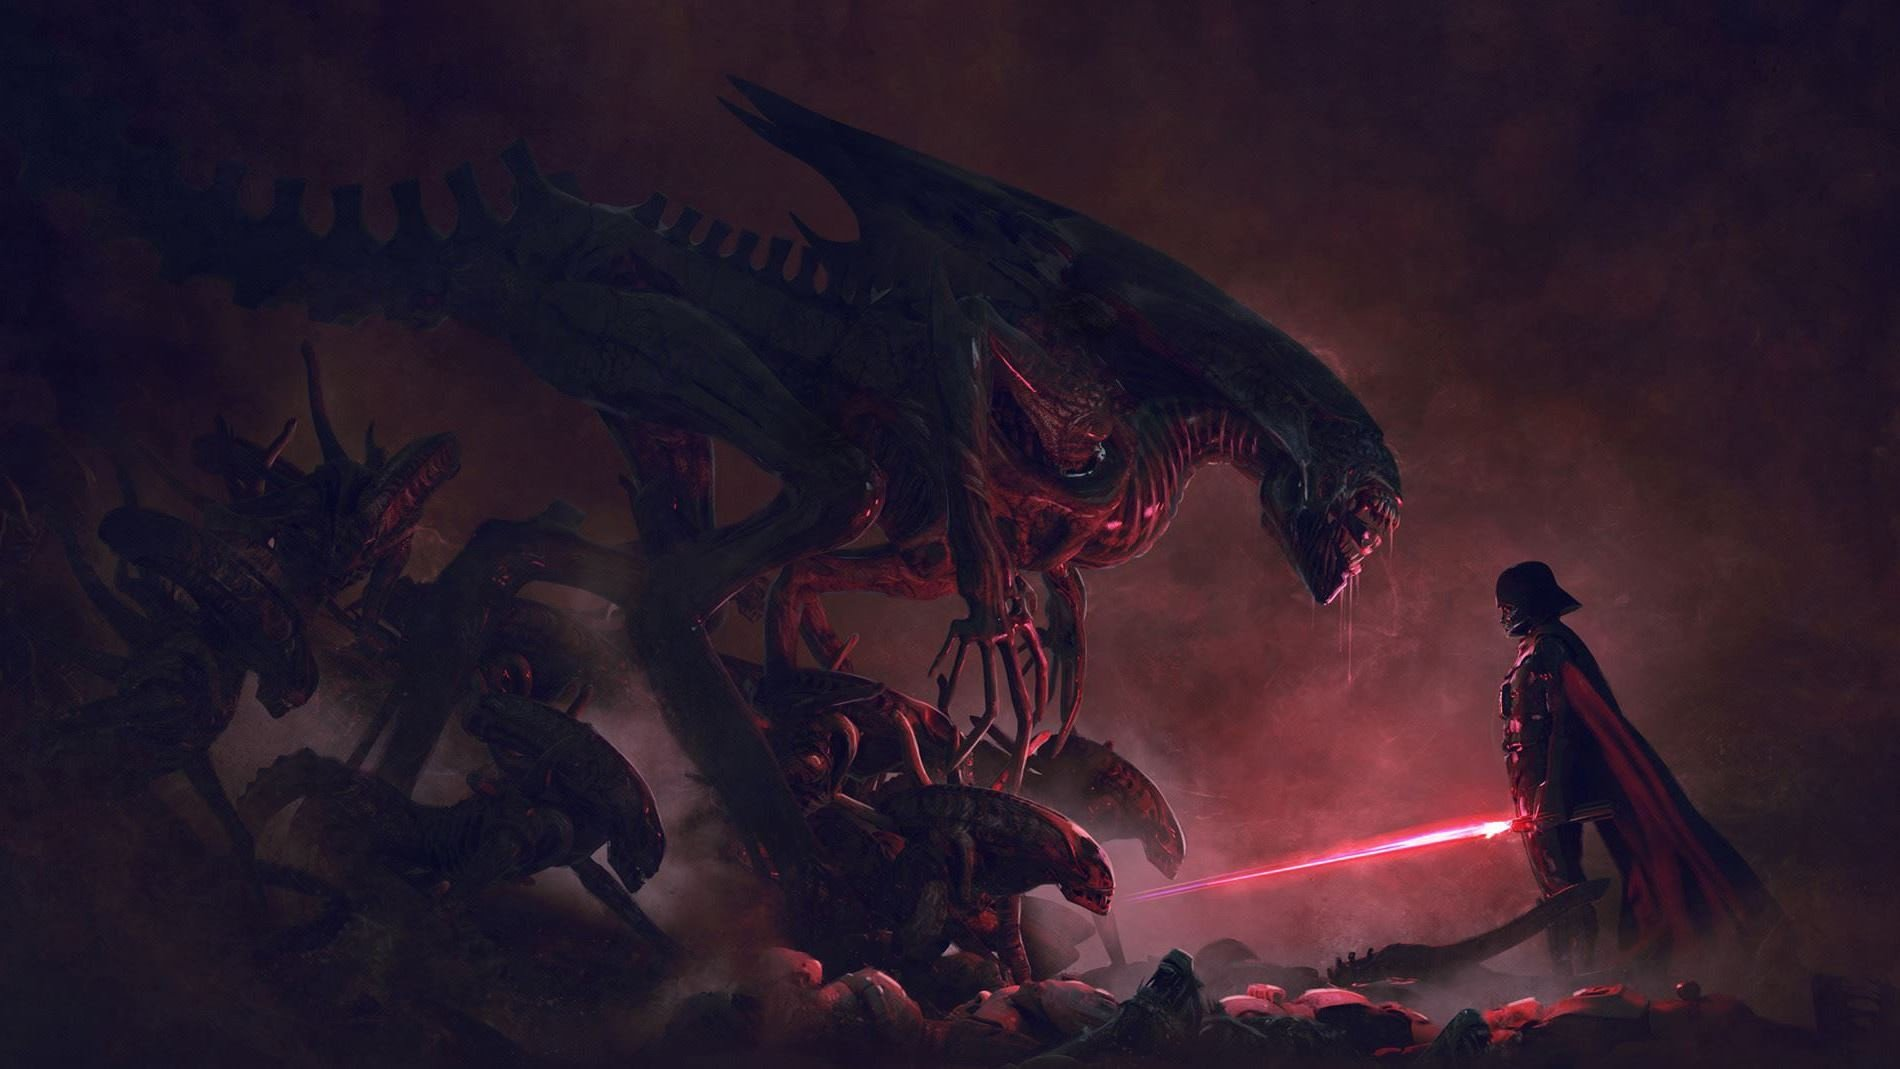 Darth Vader Alien Vs Predator Aliens Star Wars Hd Wallpapers